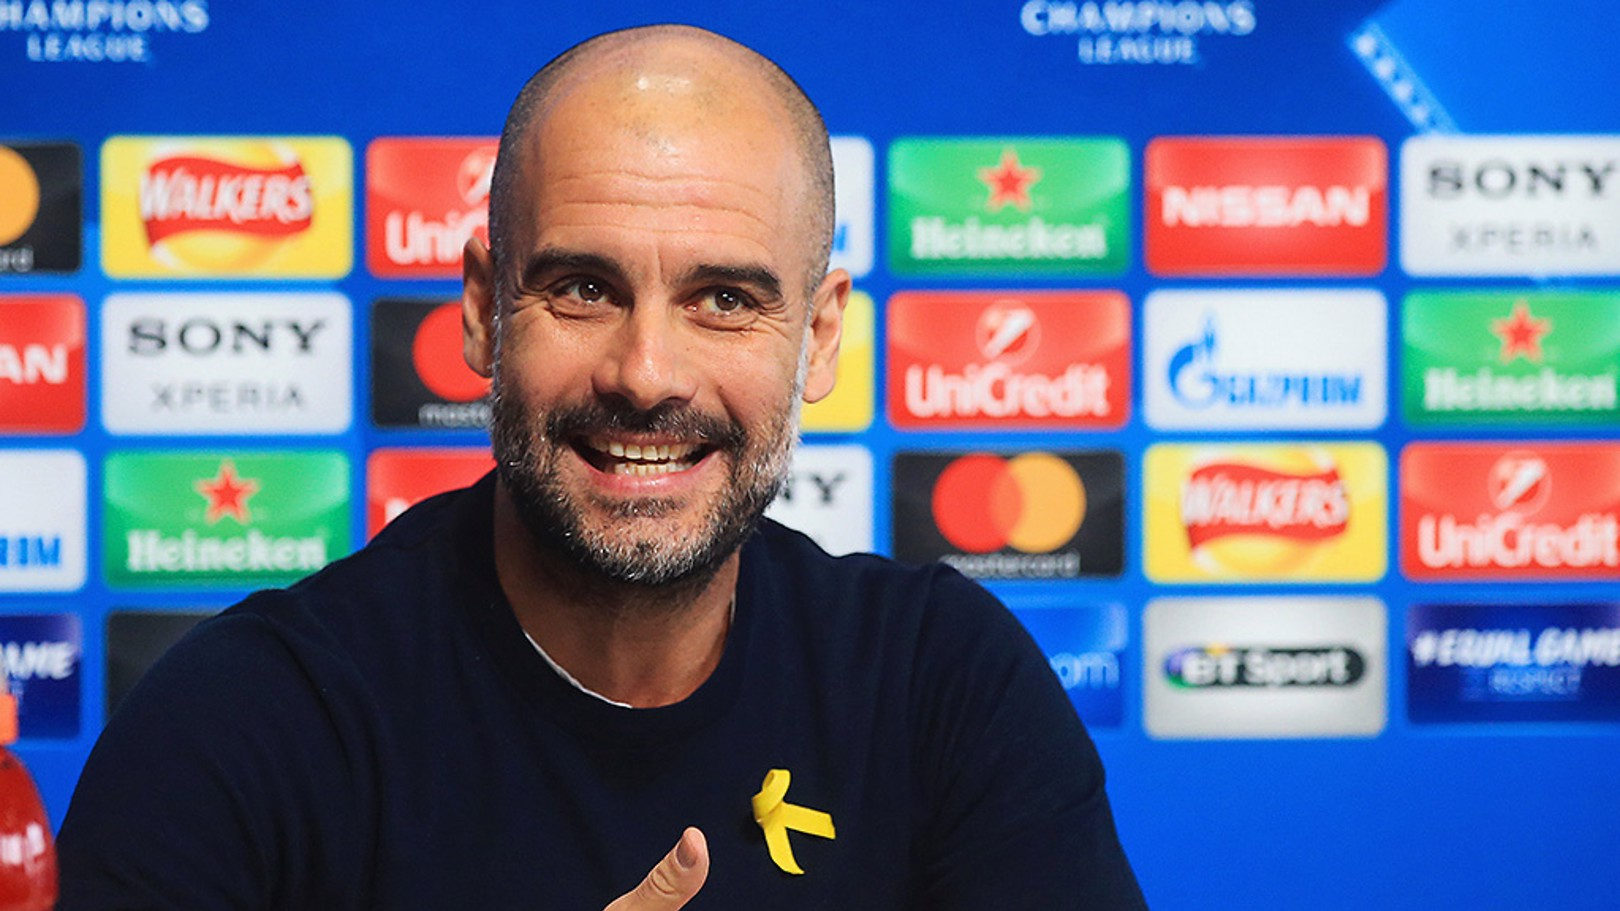 PREVIEW: Pep Guardiola in conversation with journalists ahead of the Champions League game against FC Basel.